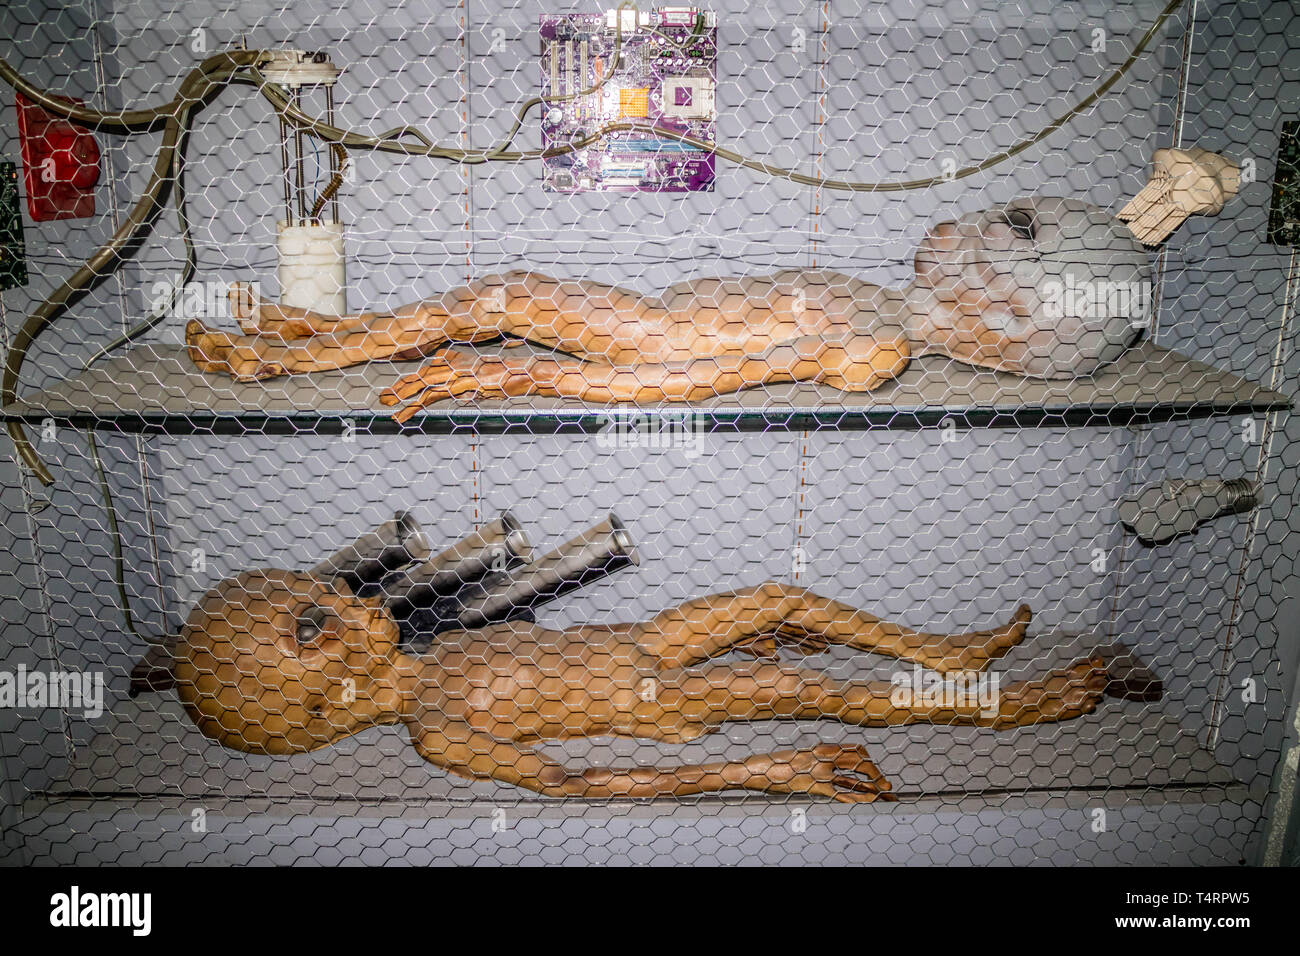 Roswell, NM, USA - April 21, 2018: The famous international collections of UFO model inside the museum - Stock Image